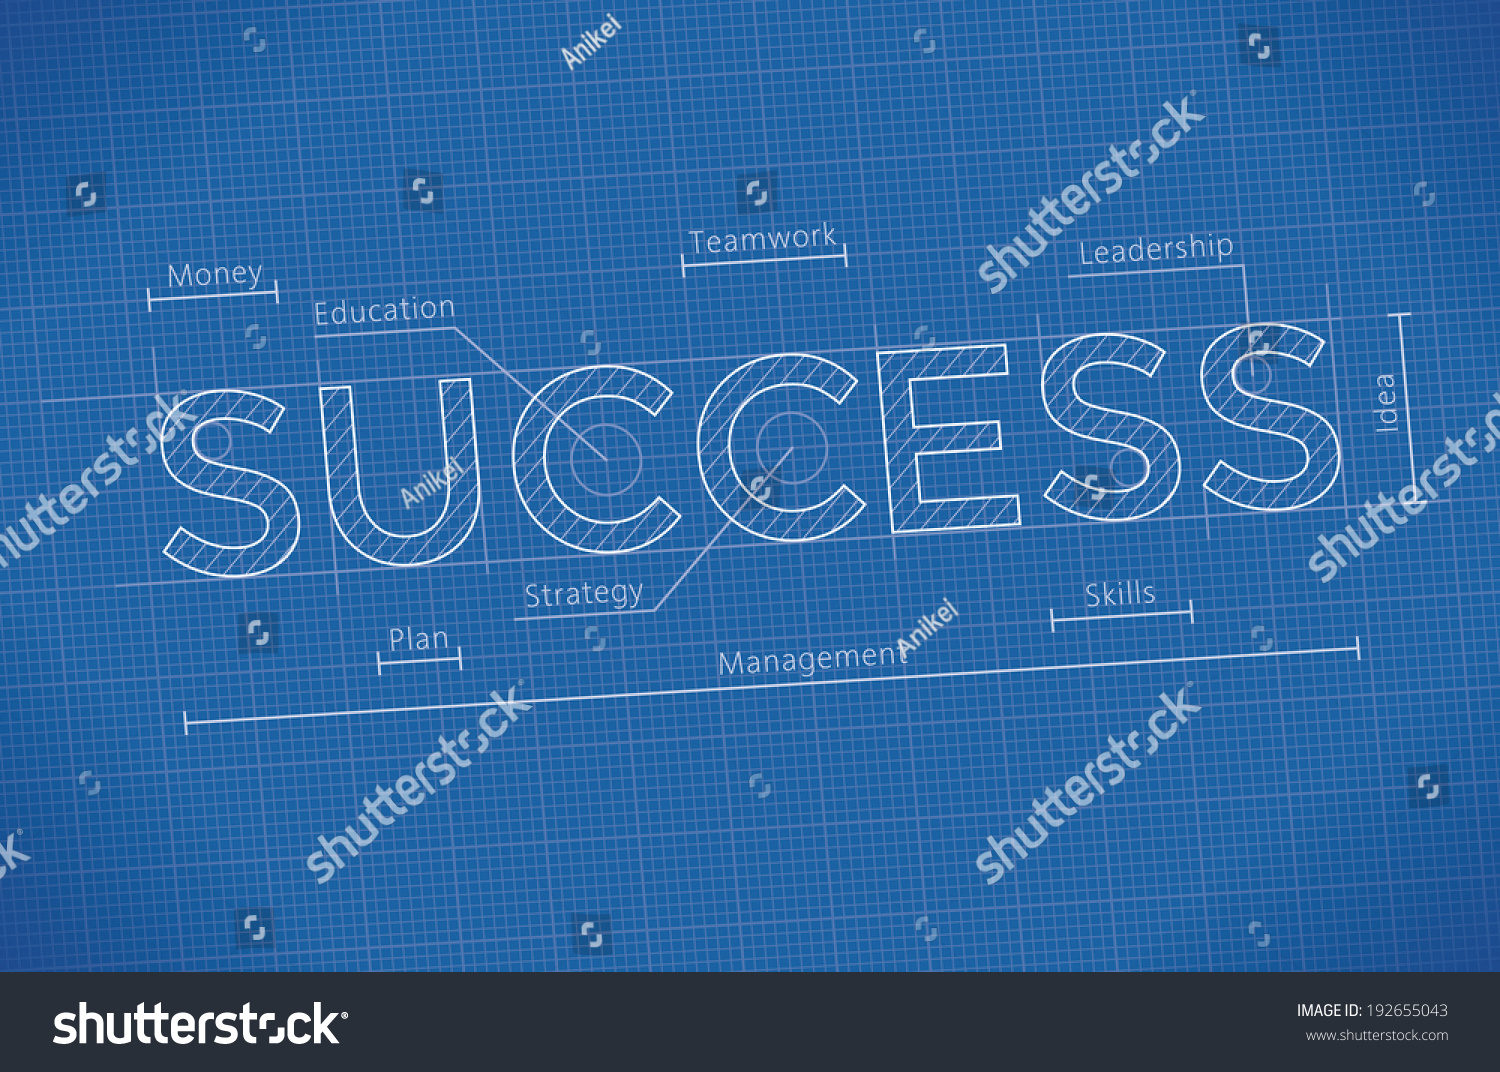 Abstract business blueprint success word idea stock vector abstract business blueprint with success word idea business success elements leadership money malvernweather Choice Image